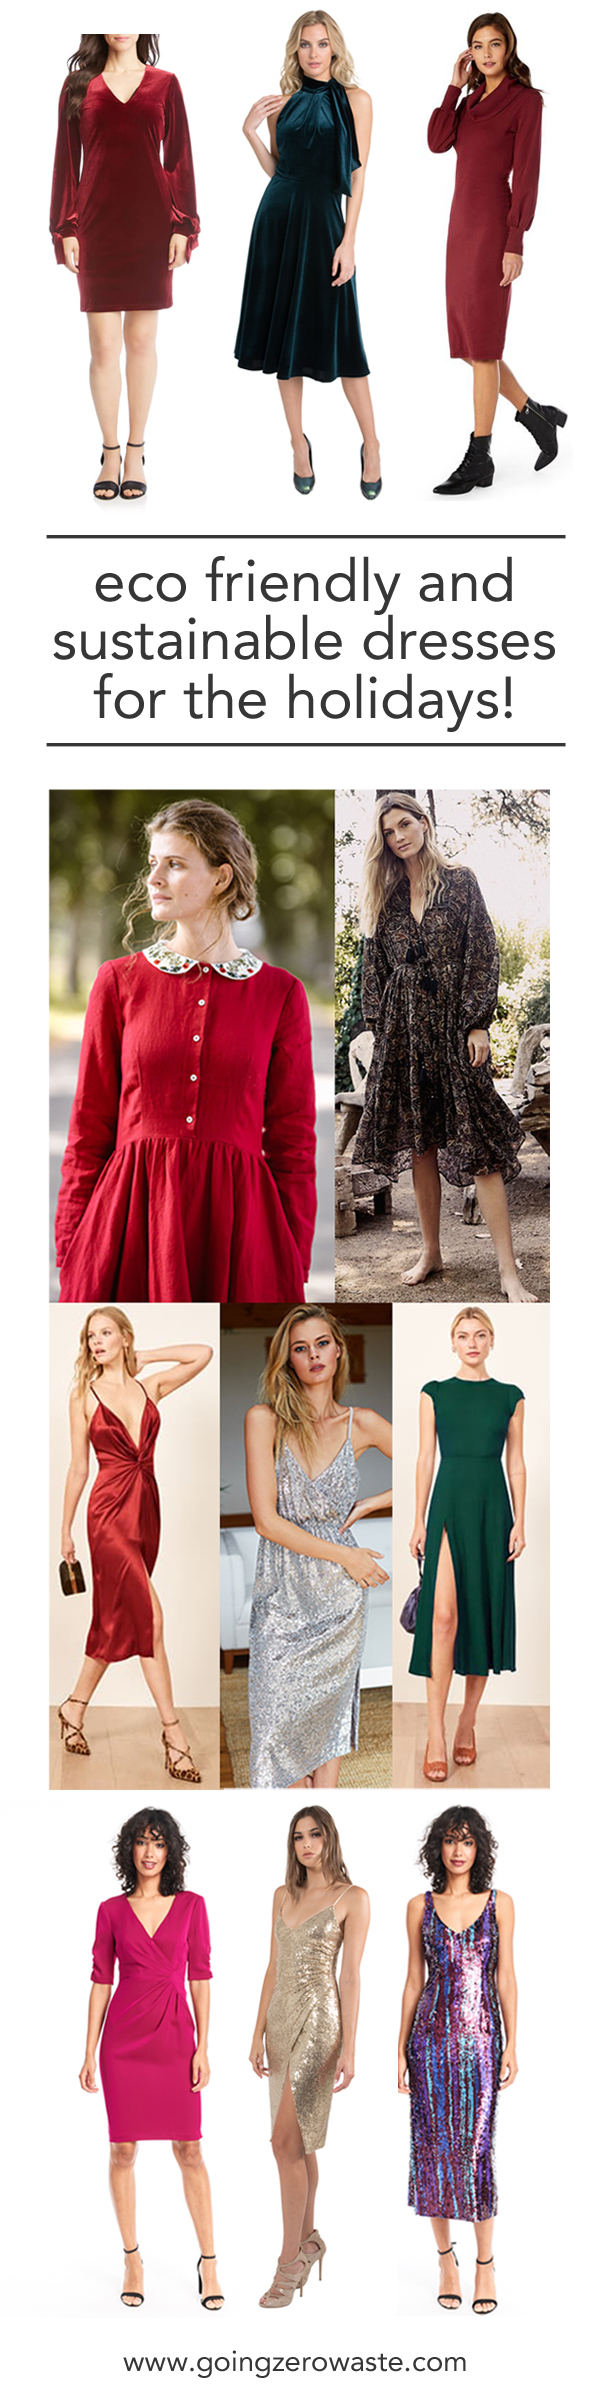 Lust worthy sustainable and ethical holiday dresses from www.goingzerowaste.com #sustainable #ecofriendly #holidaydreesses